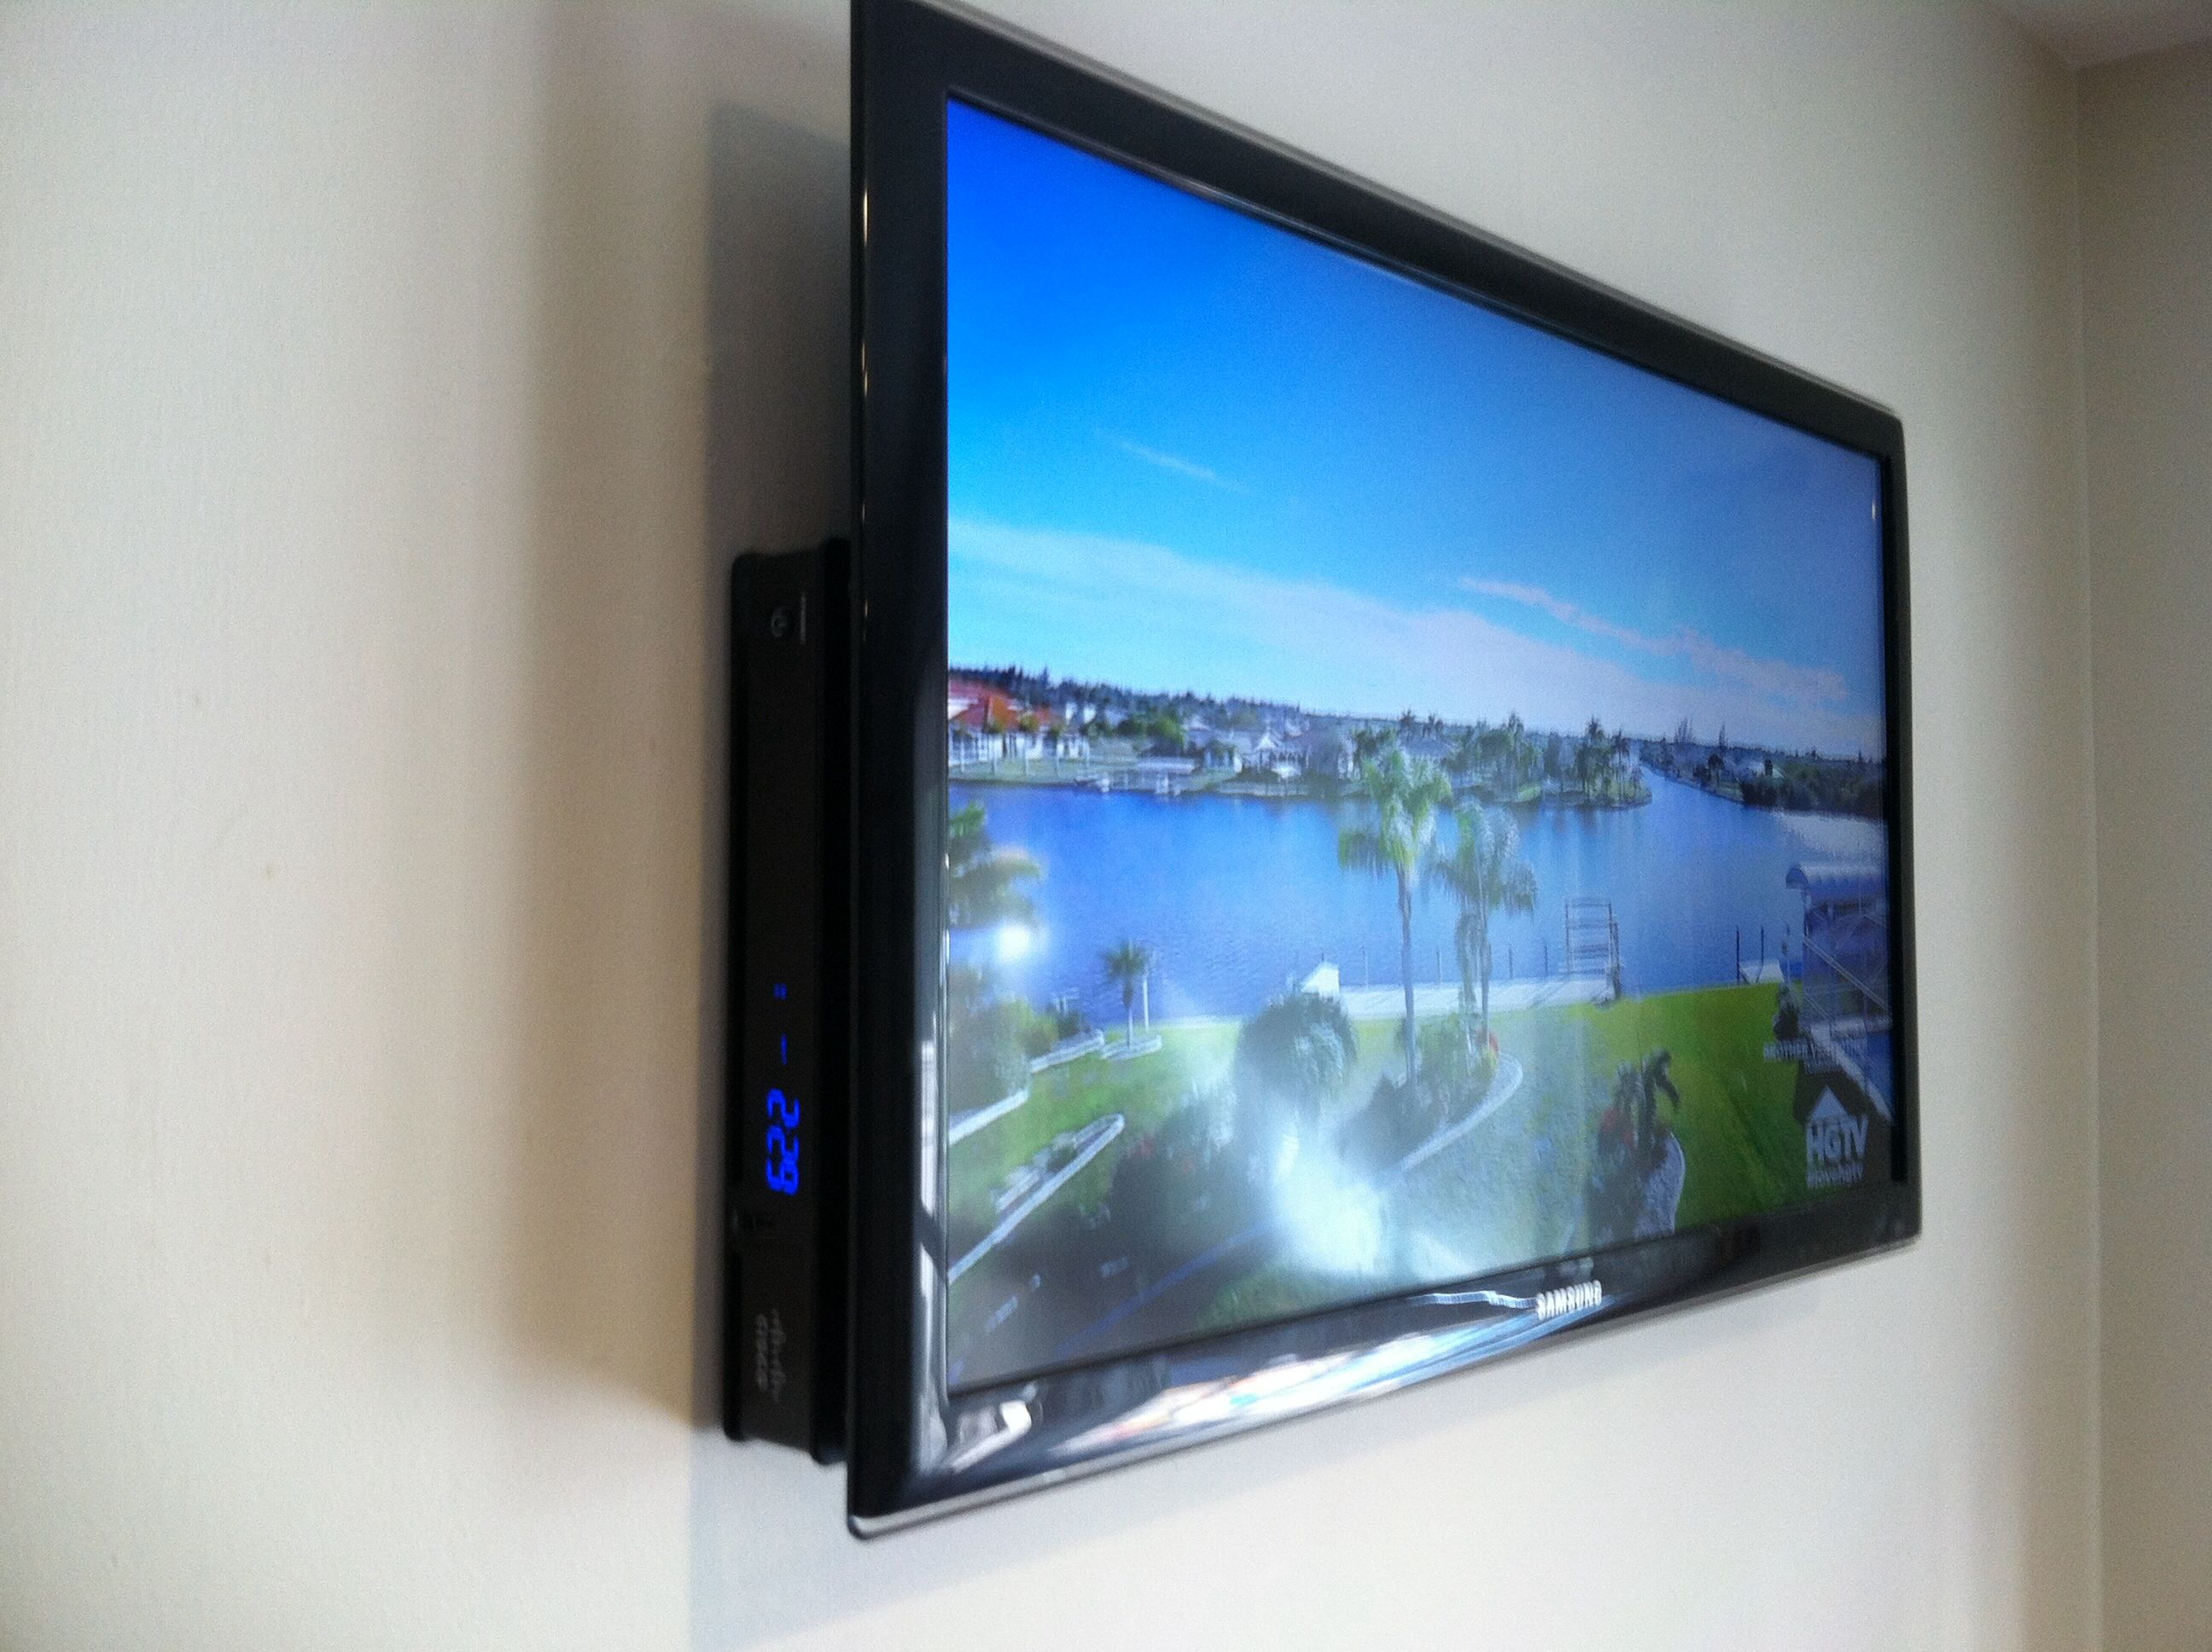 12 best TV Mounting and new ideas images on Pinterest | Tv mounting ...